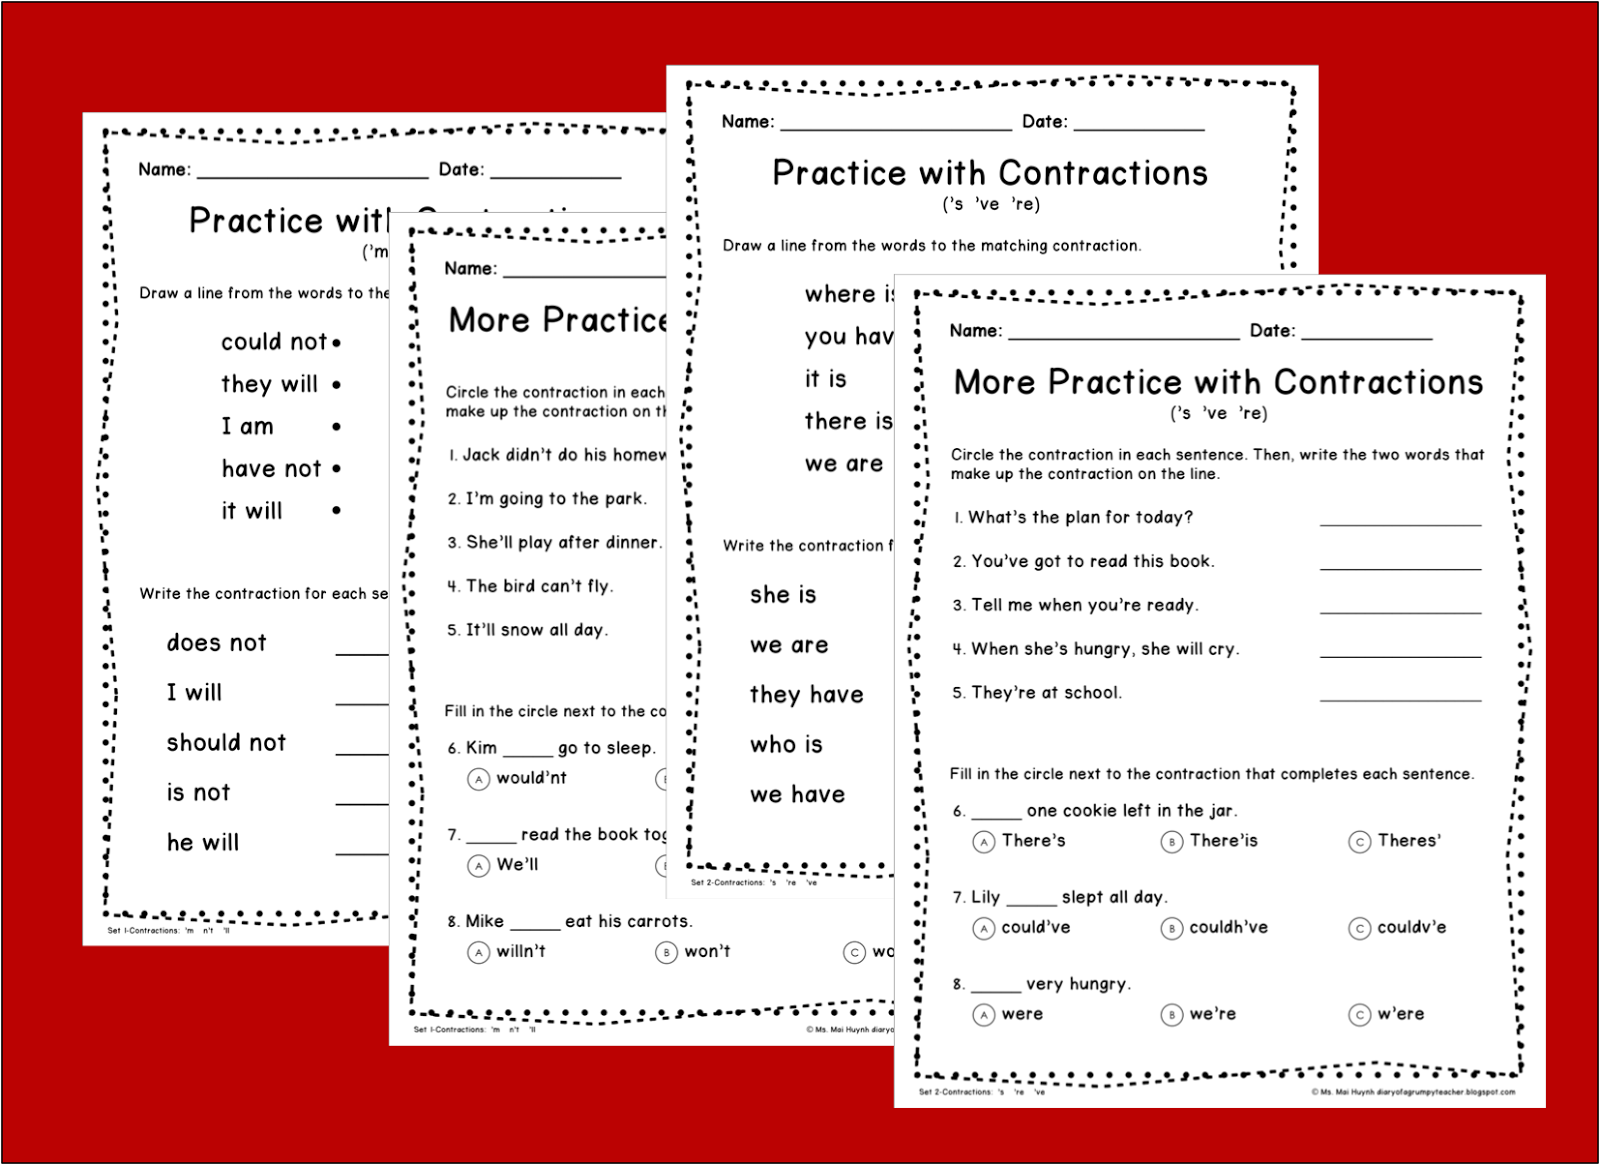 http://www.teacherspayteachers.com/Product/Heart-Contractions-1079195